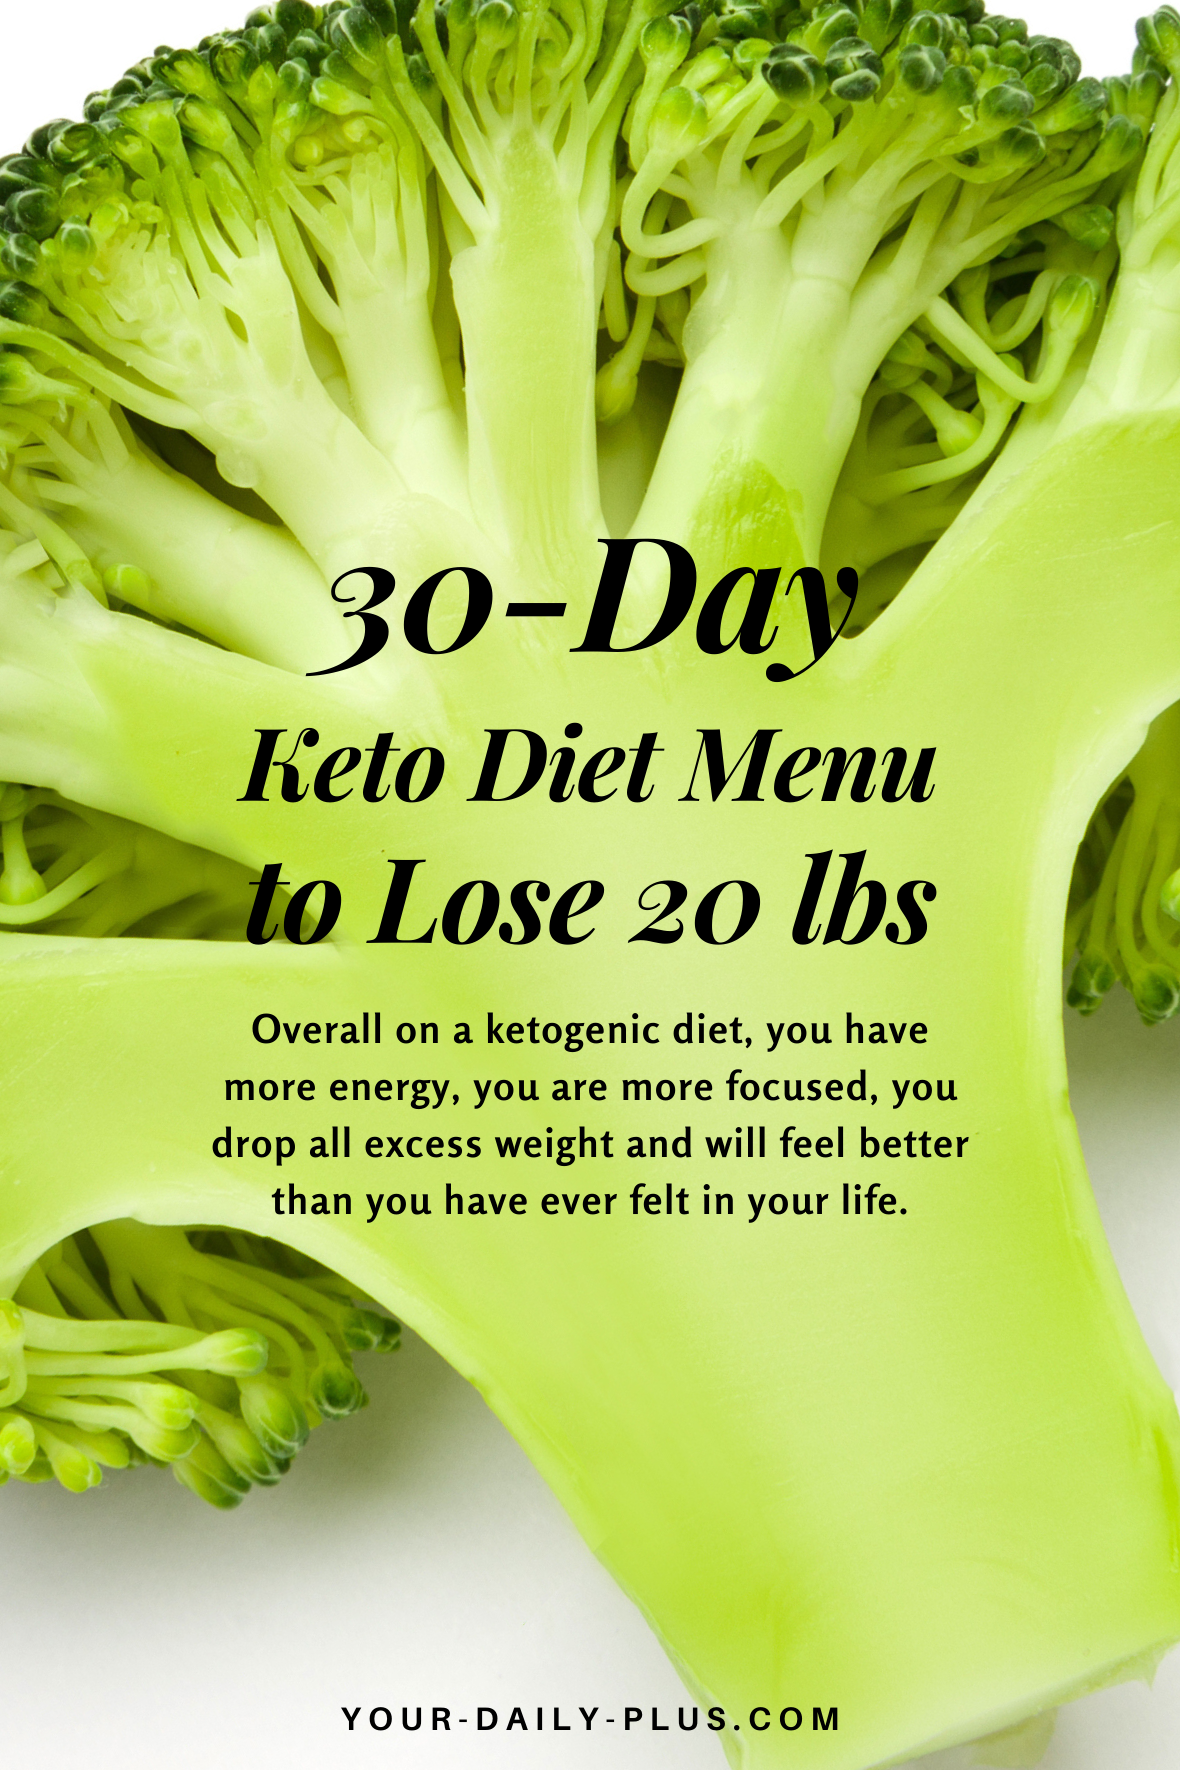 Pin By Aileen Vigo Mayo On Keto Diet In 2020 Ketogenic Diet Meal Plan Ketogenic Diet For Beginners Keto Diet Menu